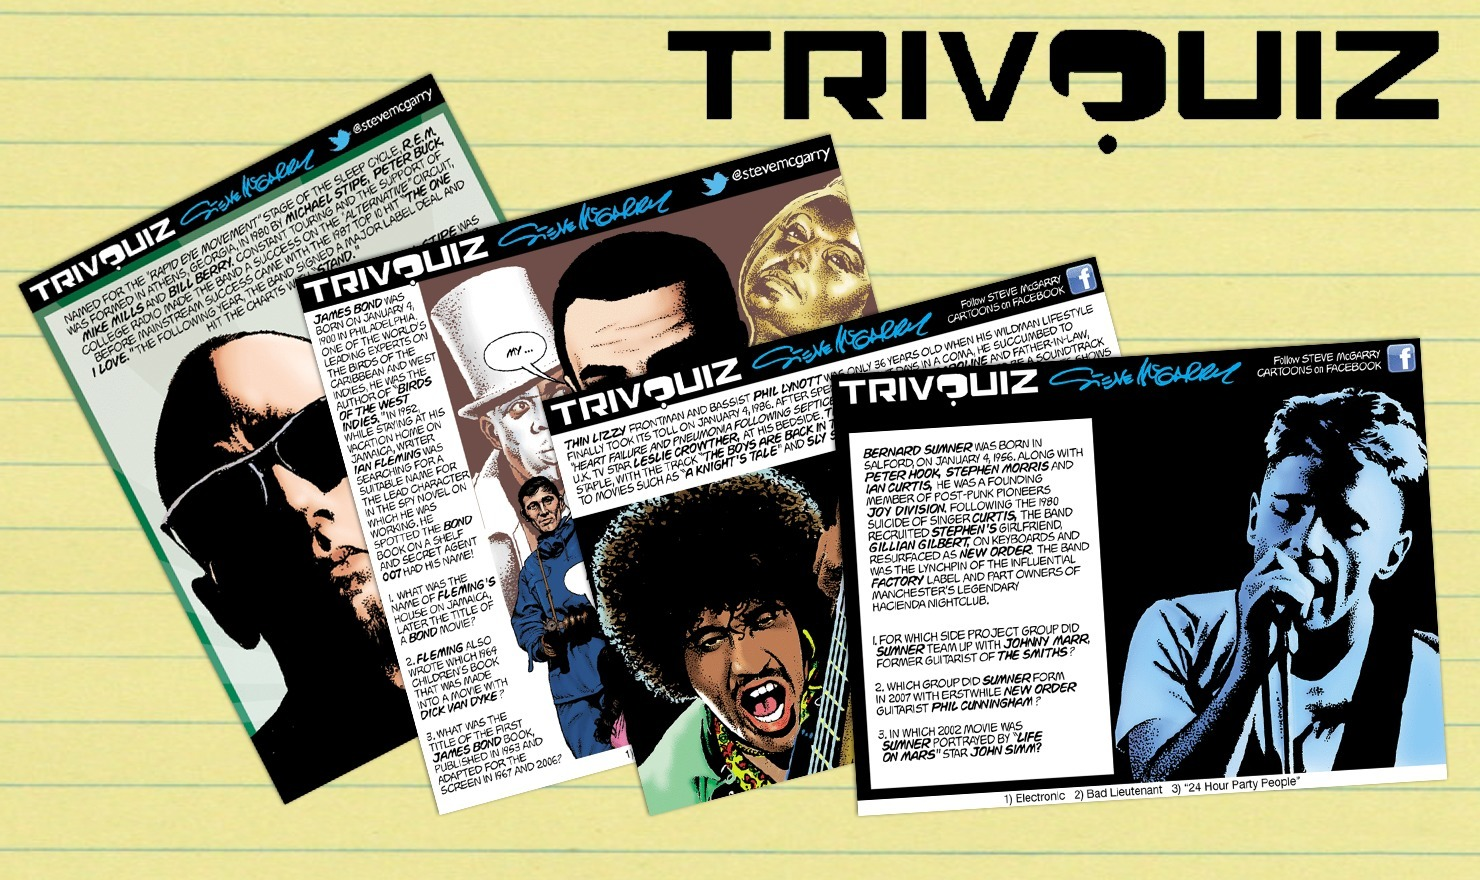 Celebrate National Trivia Day With Trivquiz